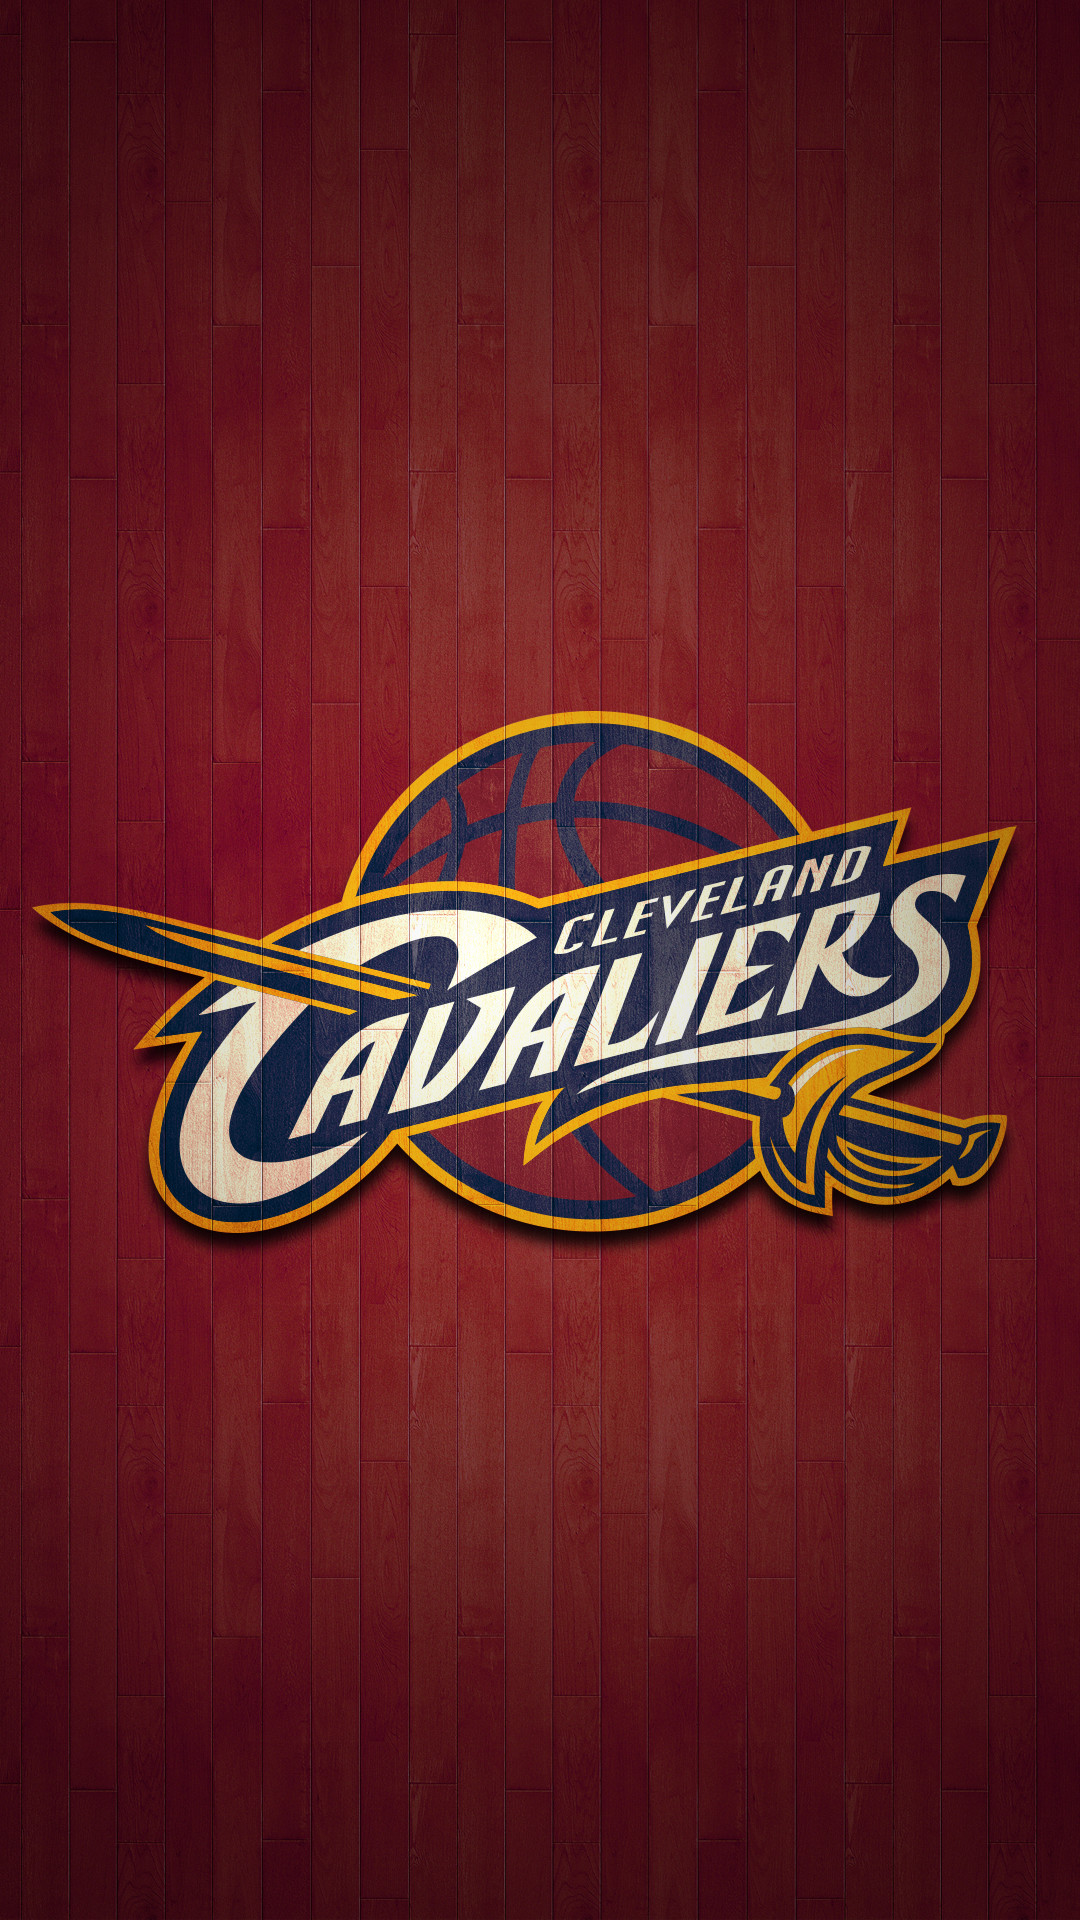 Cleveland Cavaliers 2017 Mobile lock screen wallpaper for iPhone, Android,  Pixel